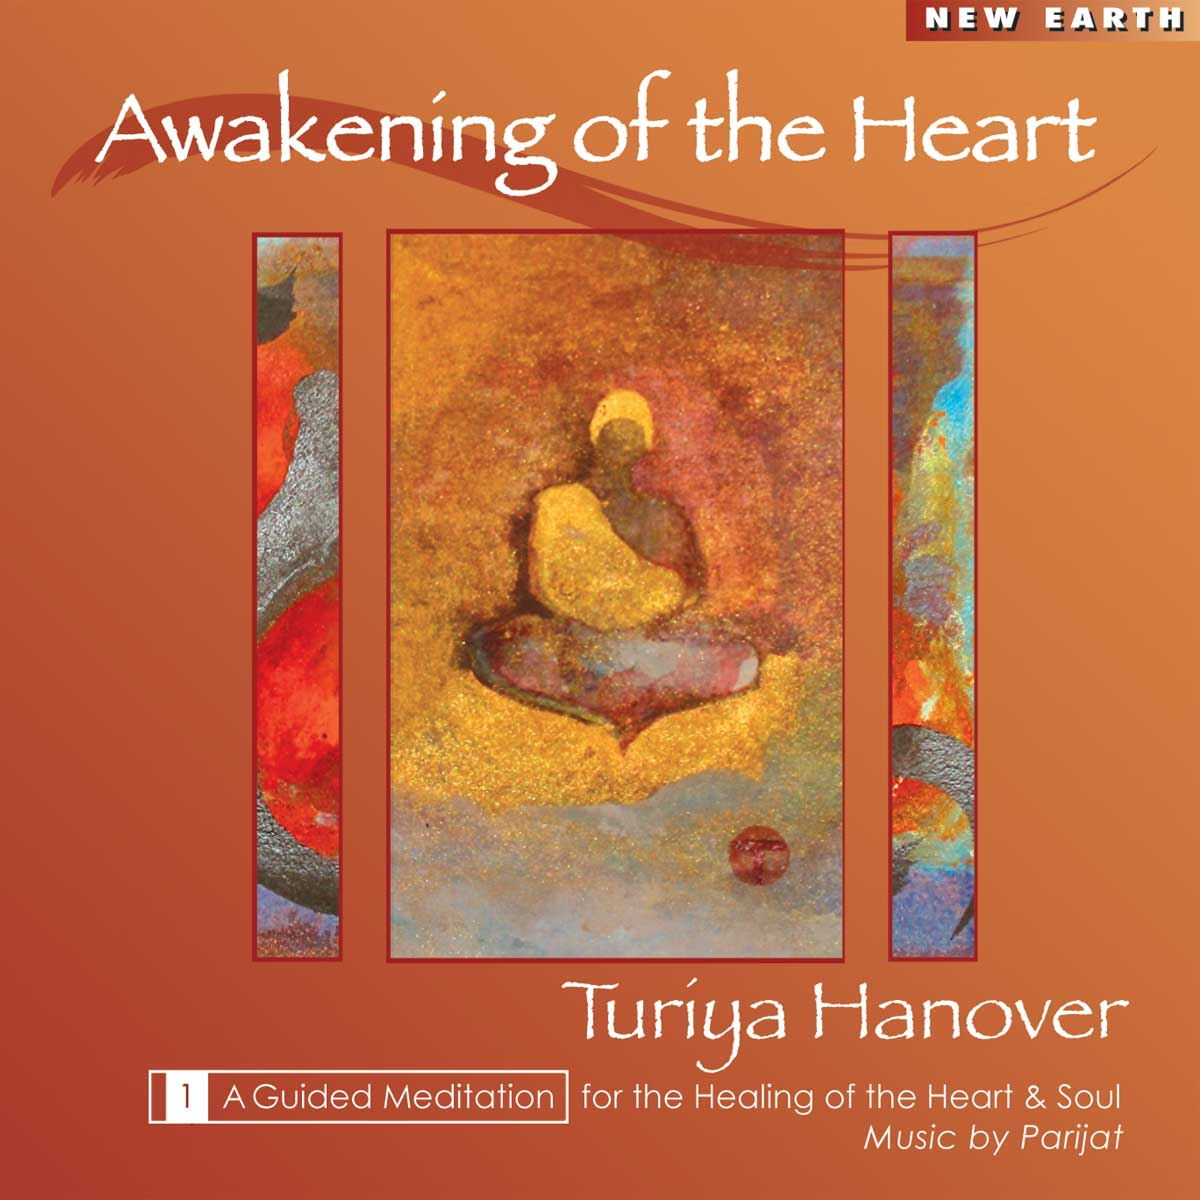 Awakening of the Heart